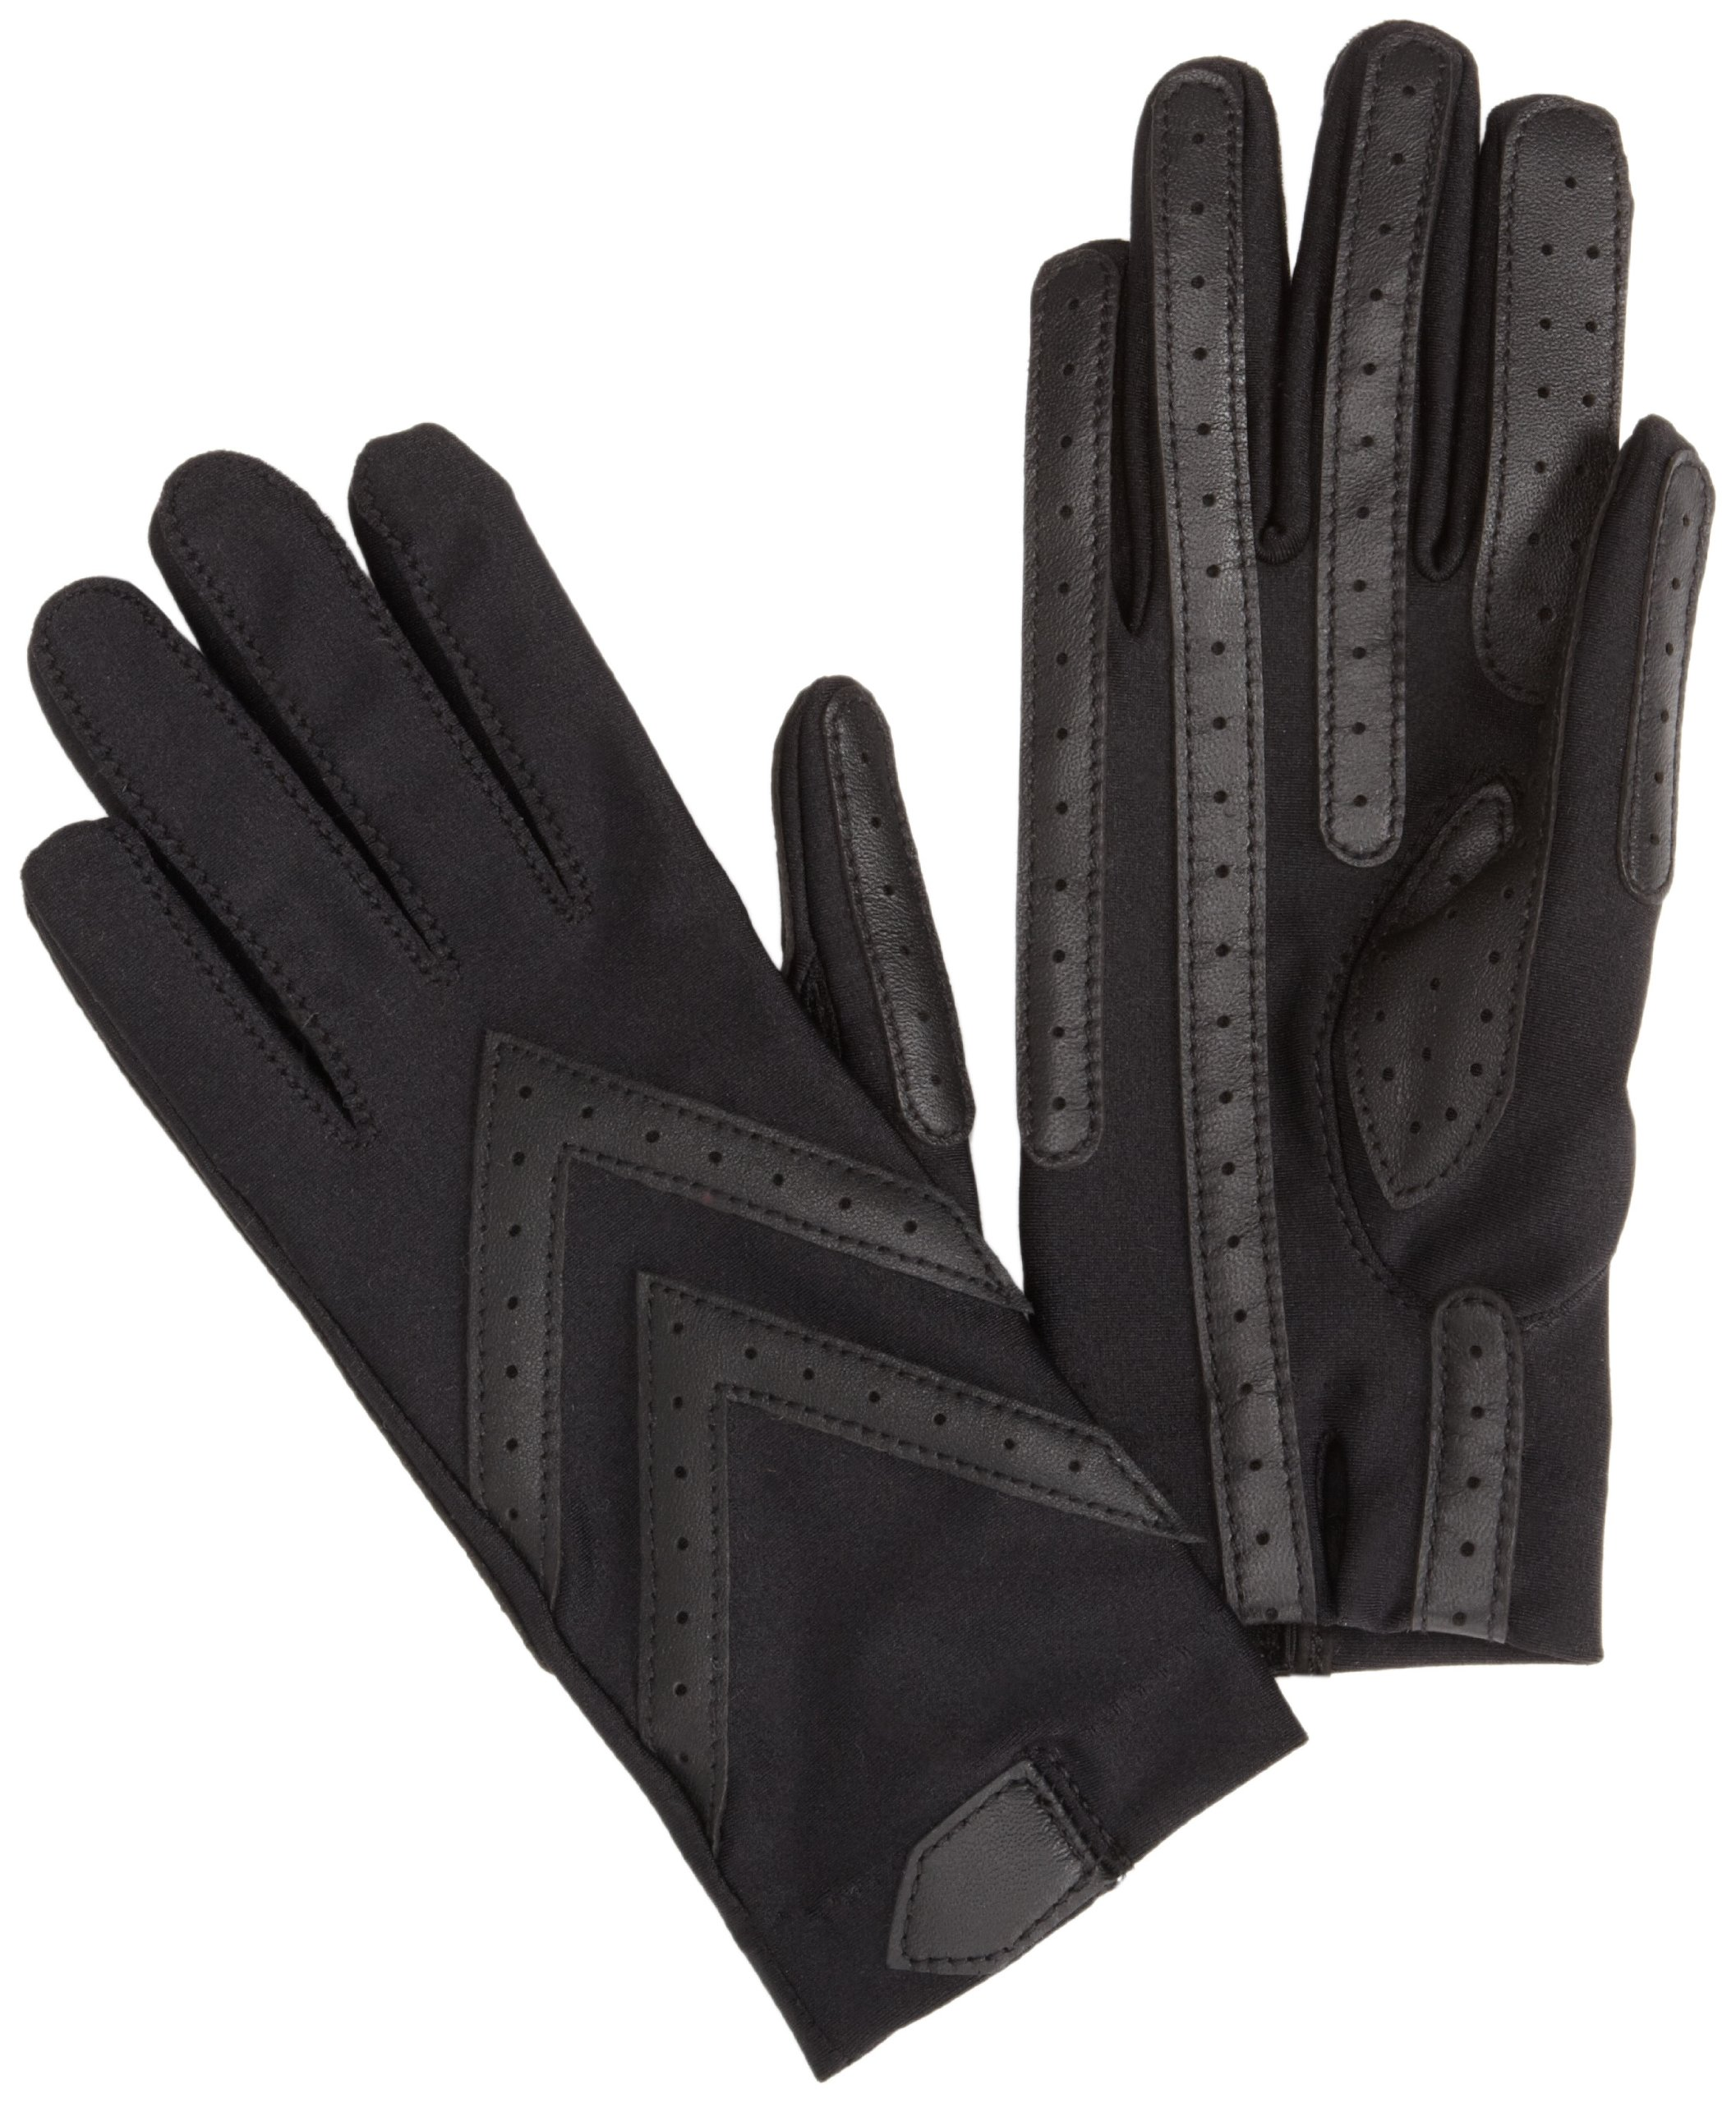 Isotoner Women's Spandex Shortie Unlined Glove,Black,One Size